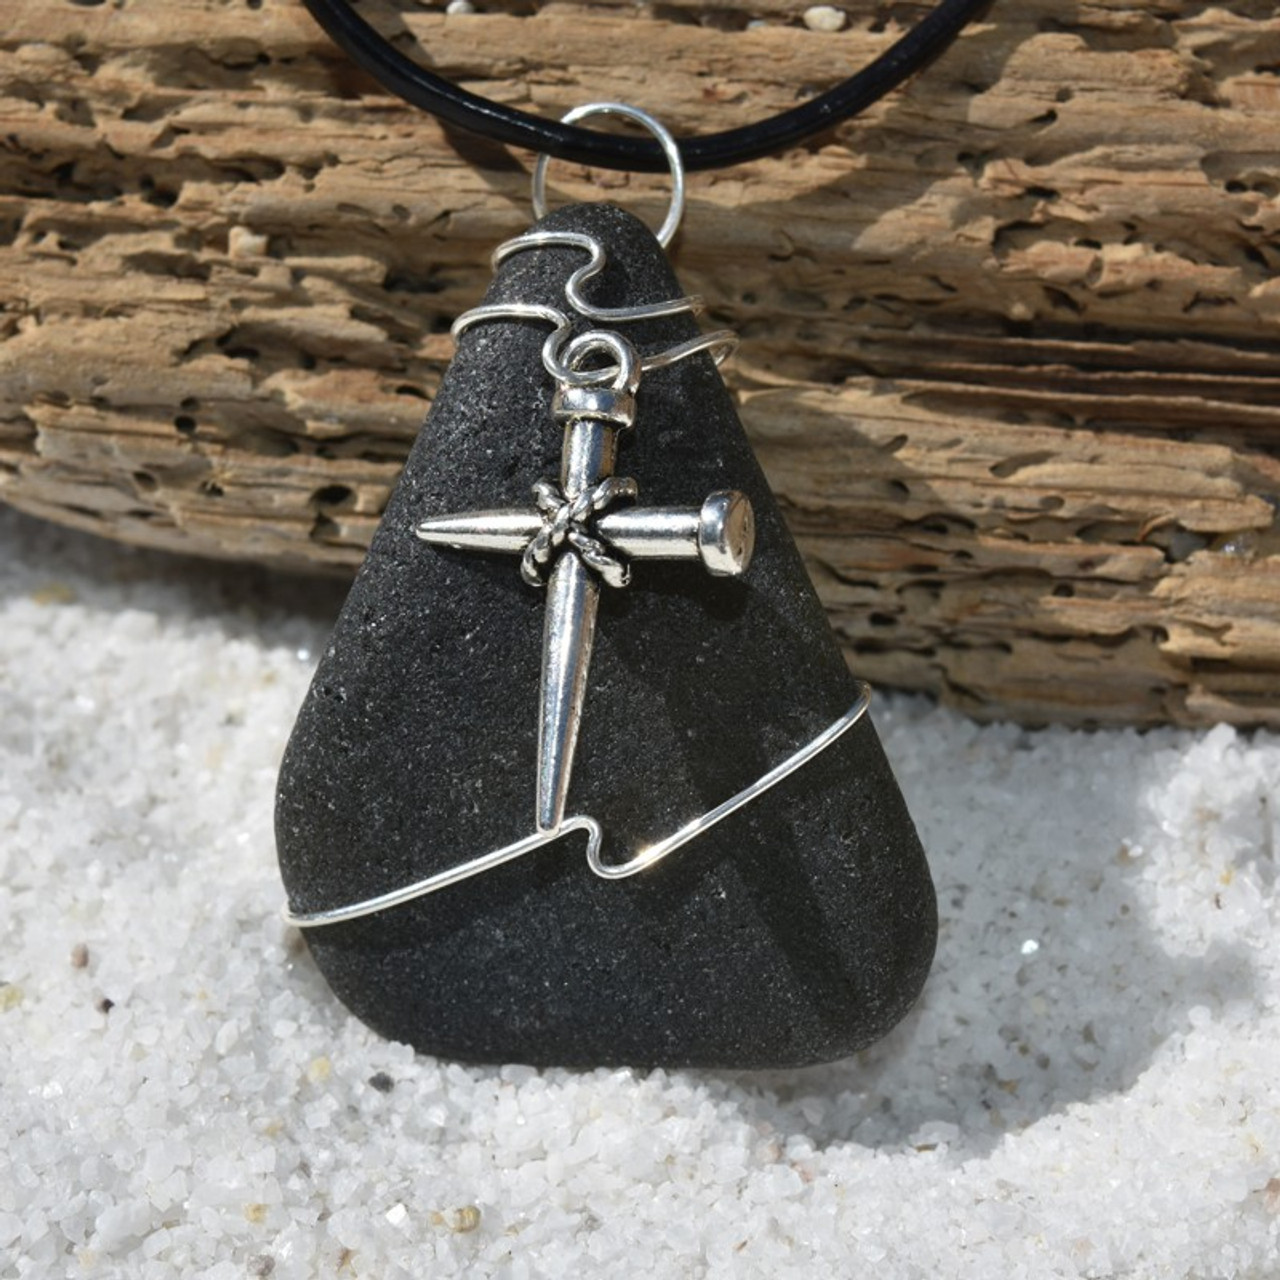 Handmade Genuine Sea Glass Necklace with a Silver Nail Cross Charm - Choose the Color - Frosted, Green, Brown, or Aqua - Made to Order